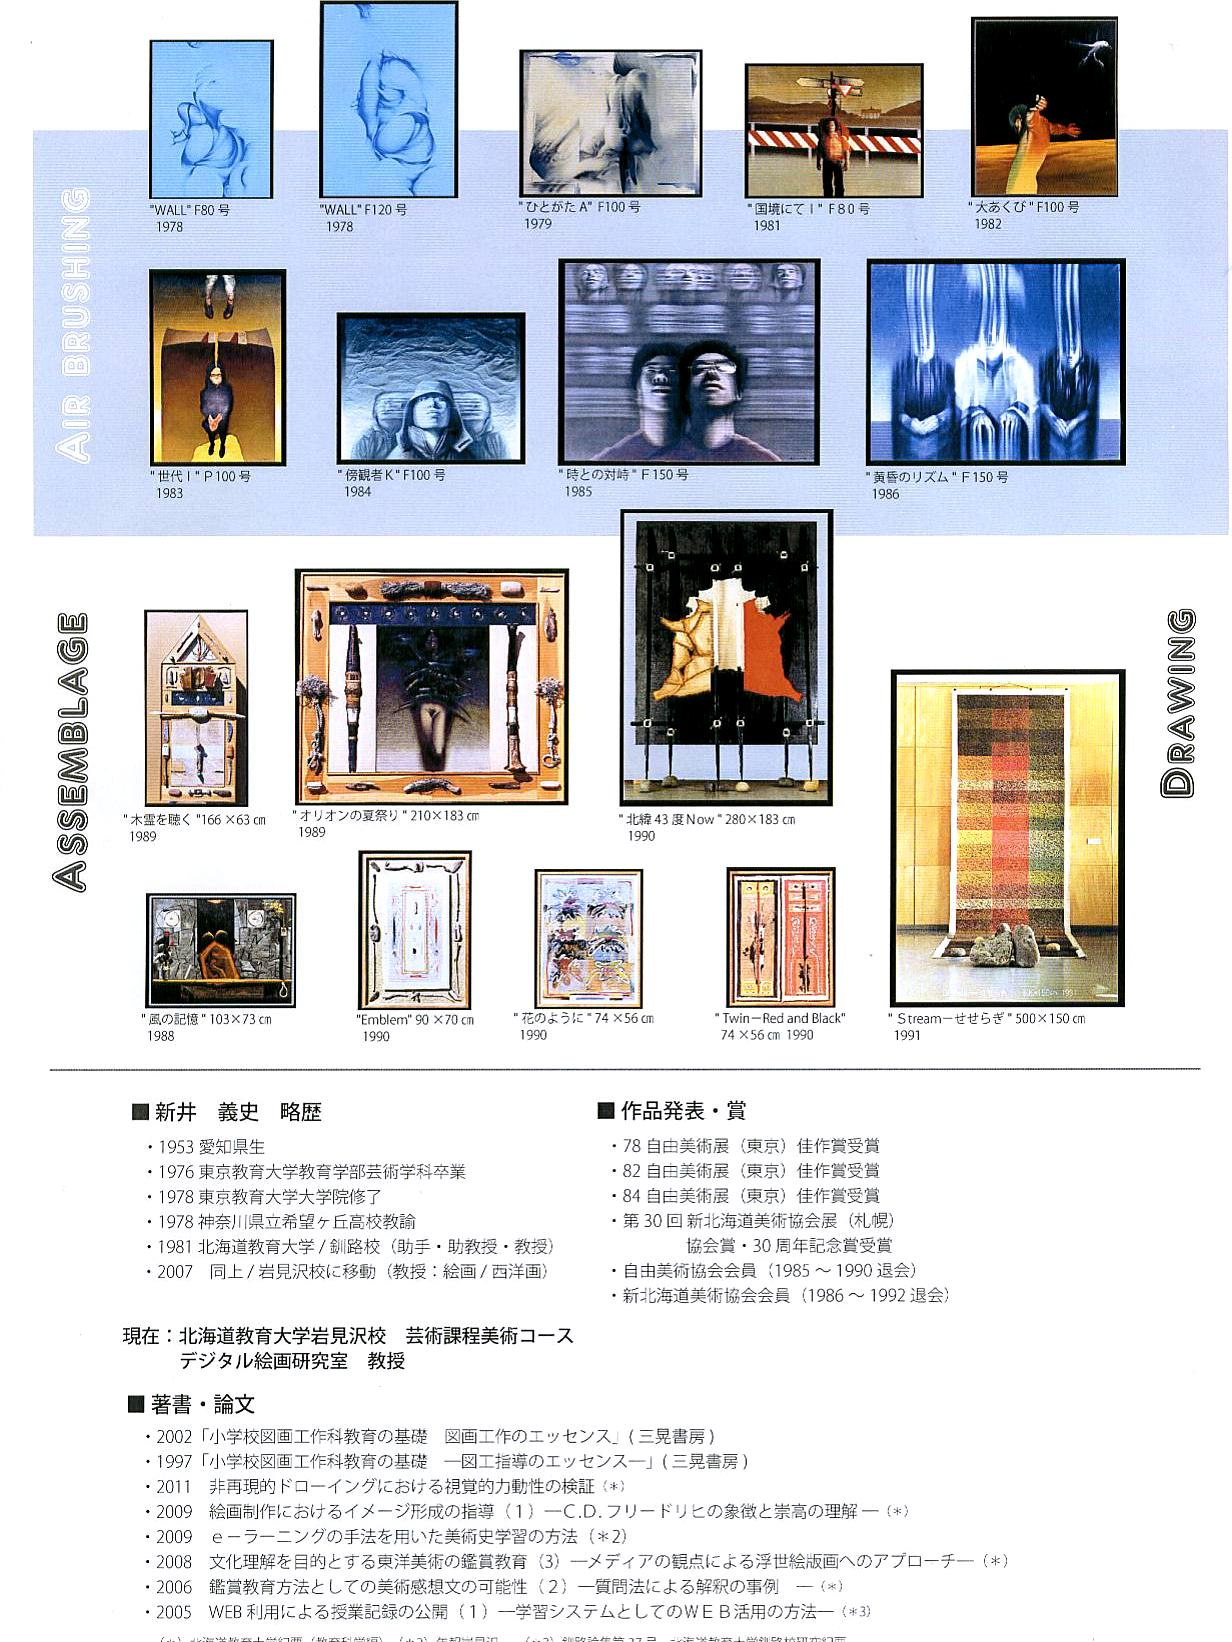 2180)「新井義史 Digital Graphics 展」 茶廊法邑 8月24日(土)~9月1日(日)_f0126829_948587.jpg